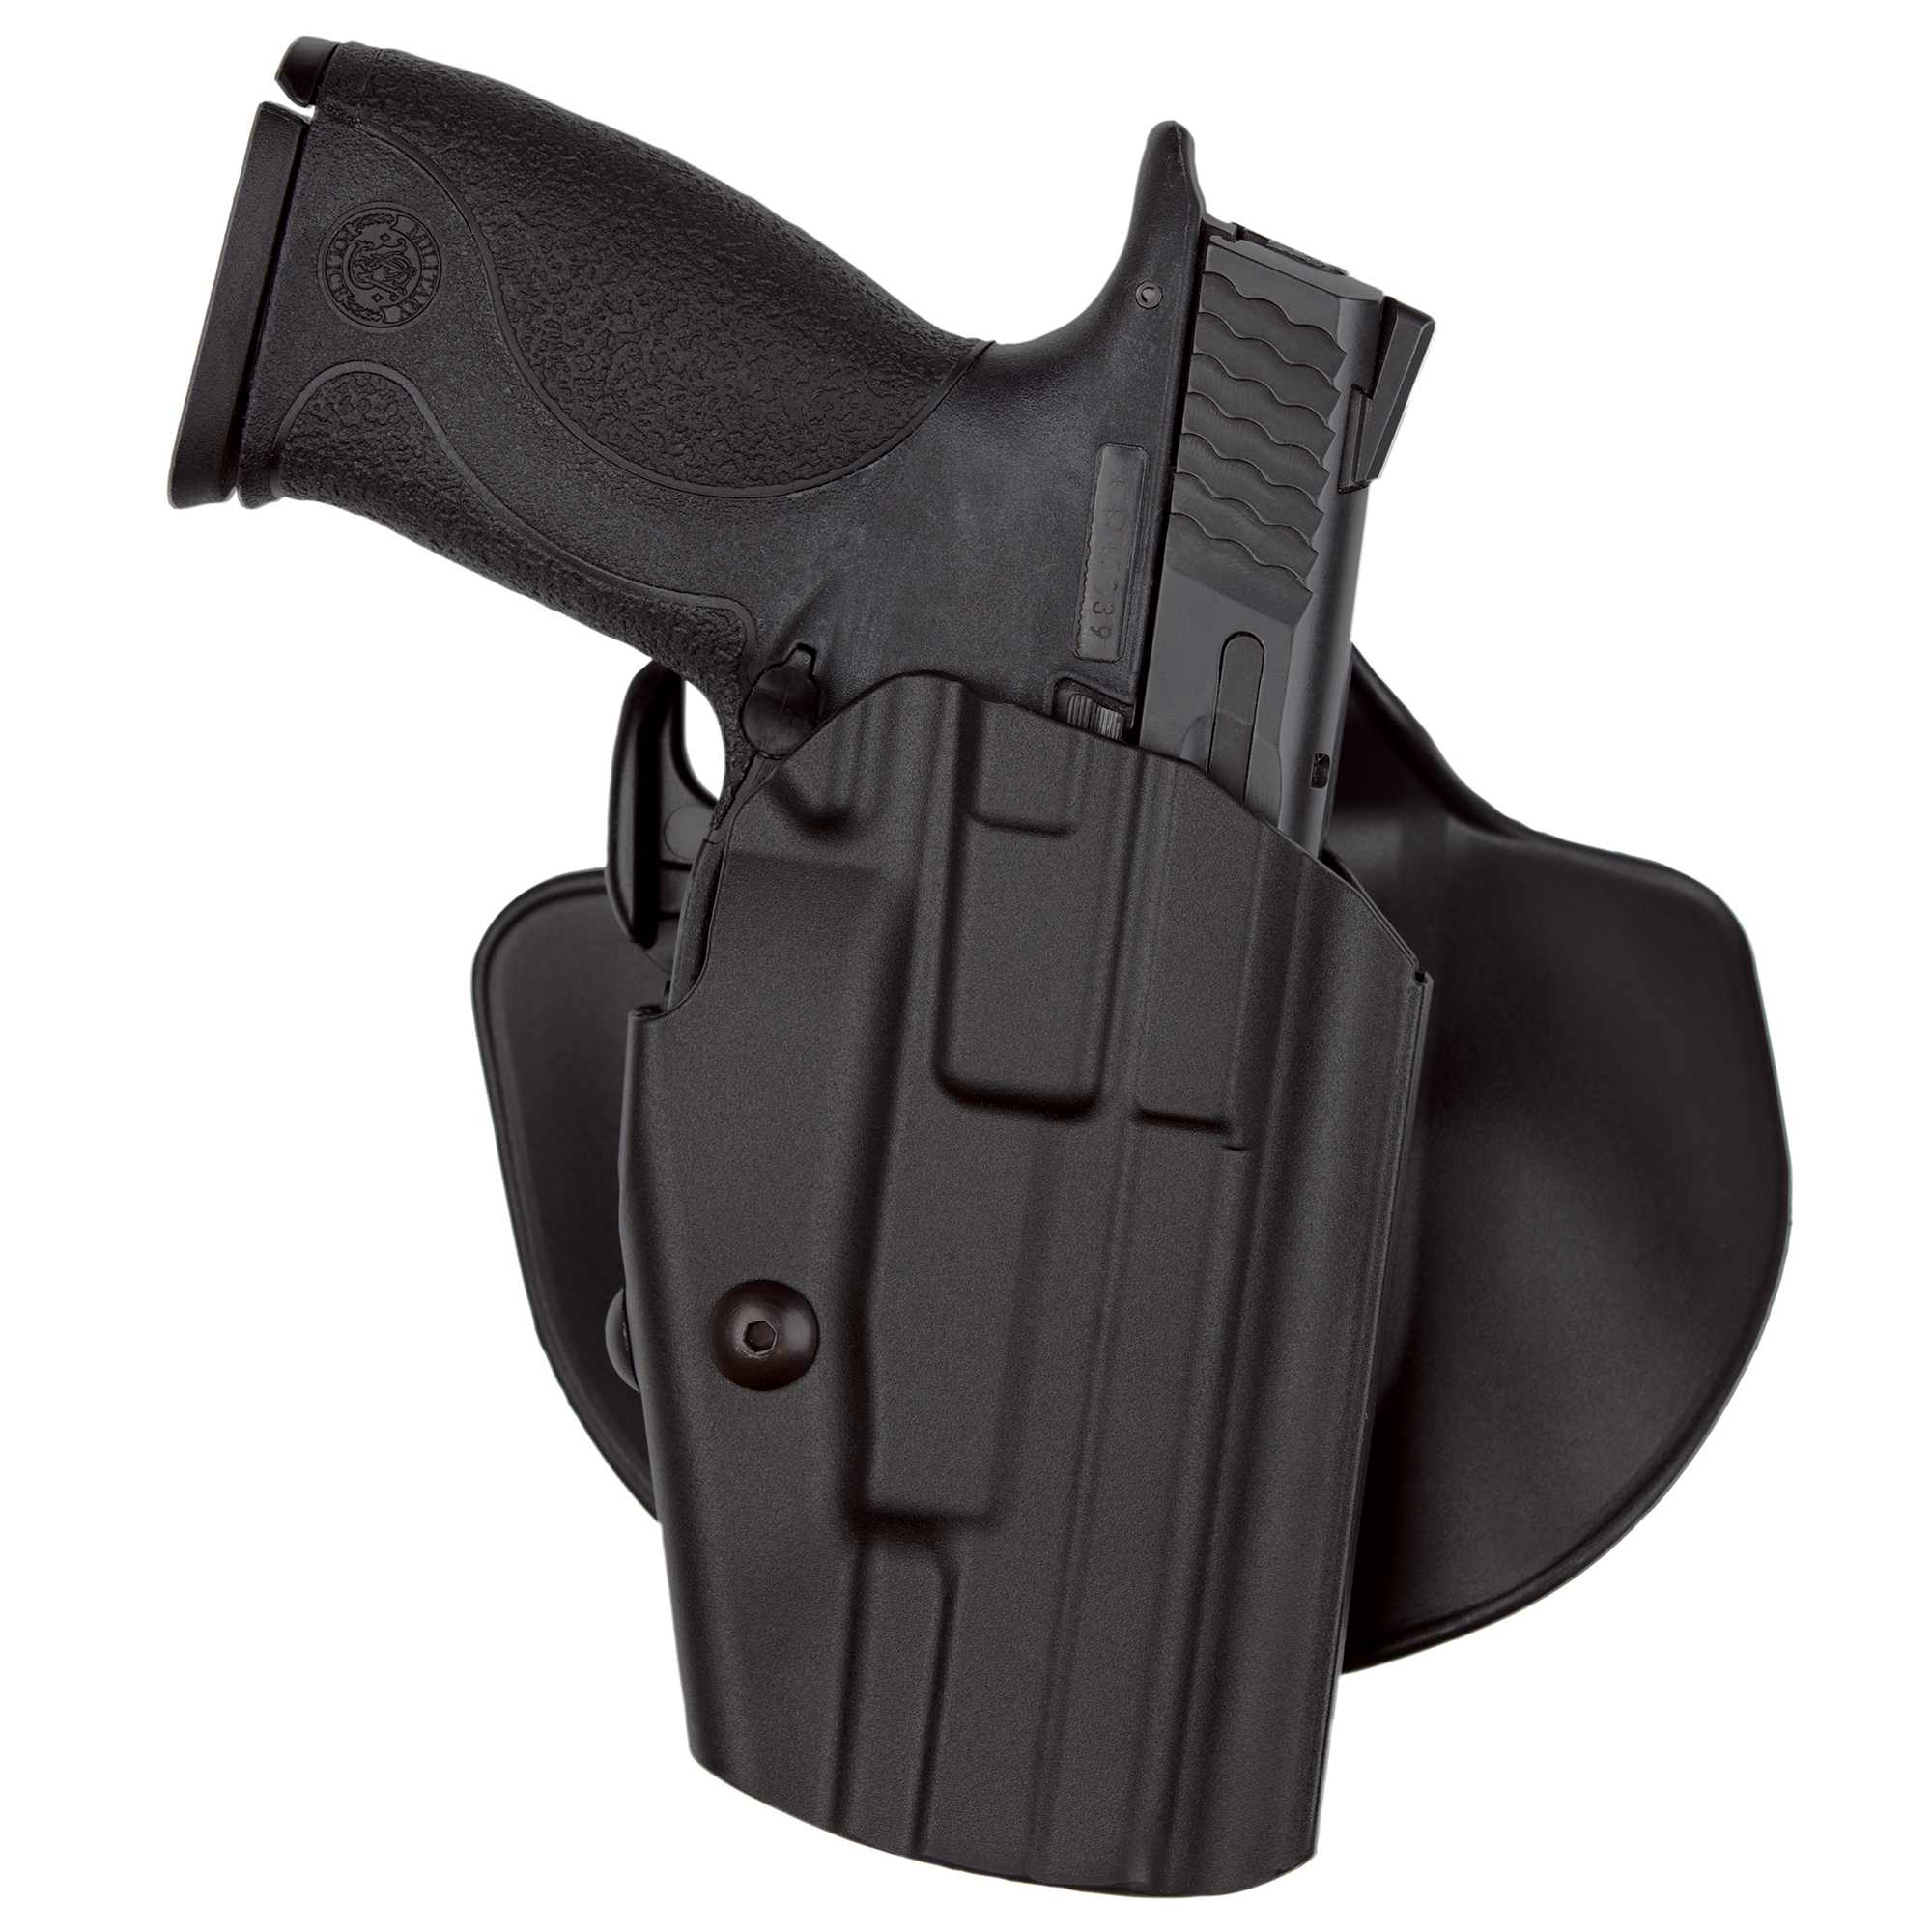 Safariland Model 578 GLS Pro-Fit Paddle Holster, Standard